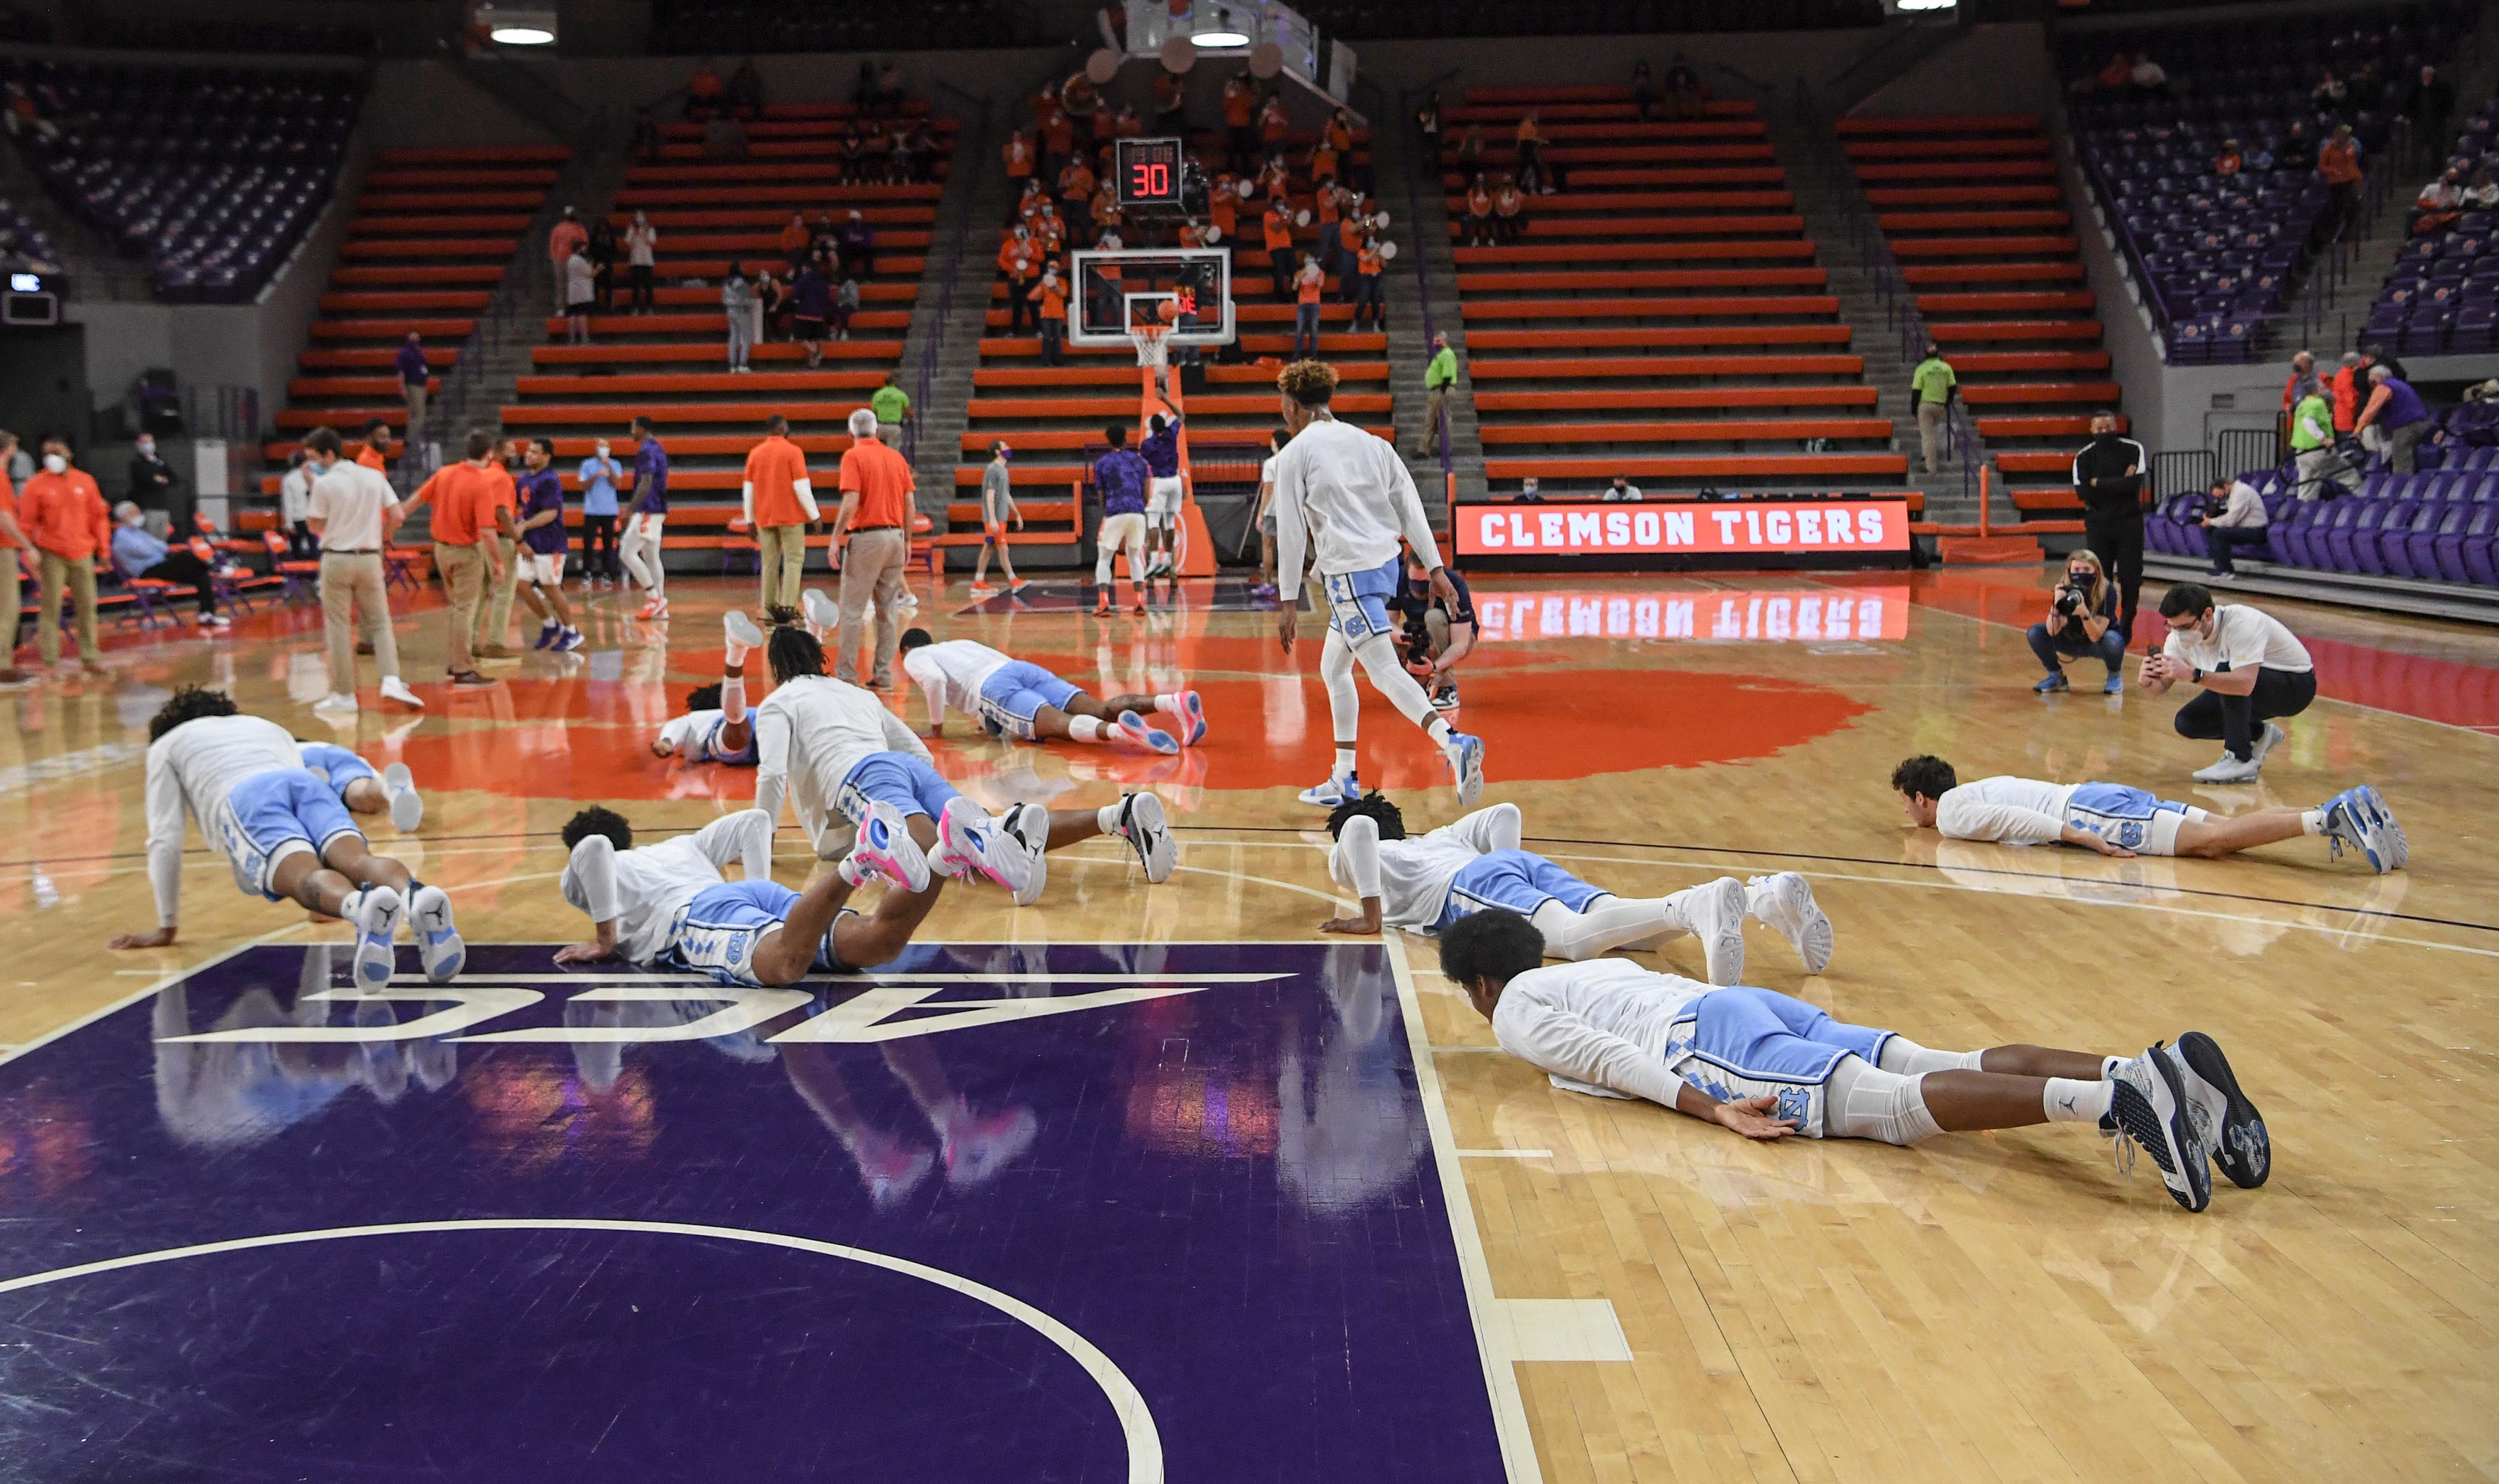 North Carolina players lay down on the floor after warmups before tipoff with Clemson Feb 2, 2021; Clemson, South Carolina, USA;  at Littlejohn Coliseum.